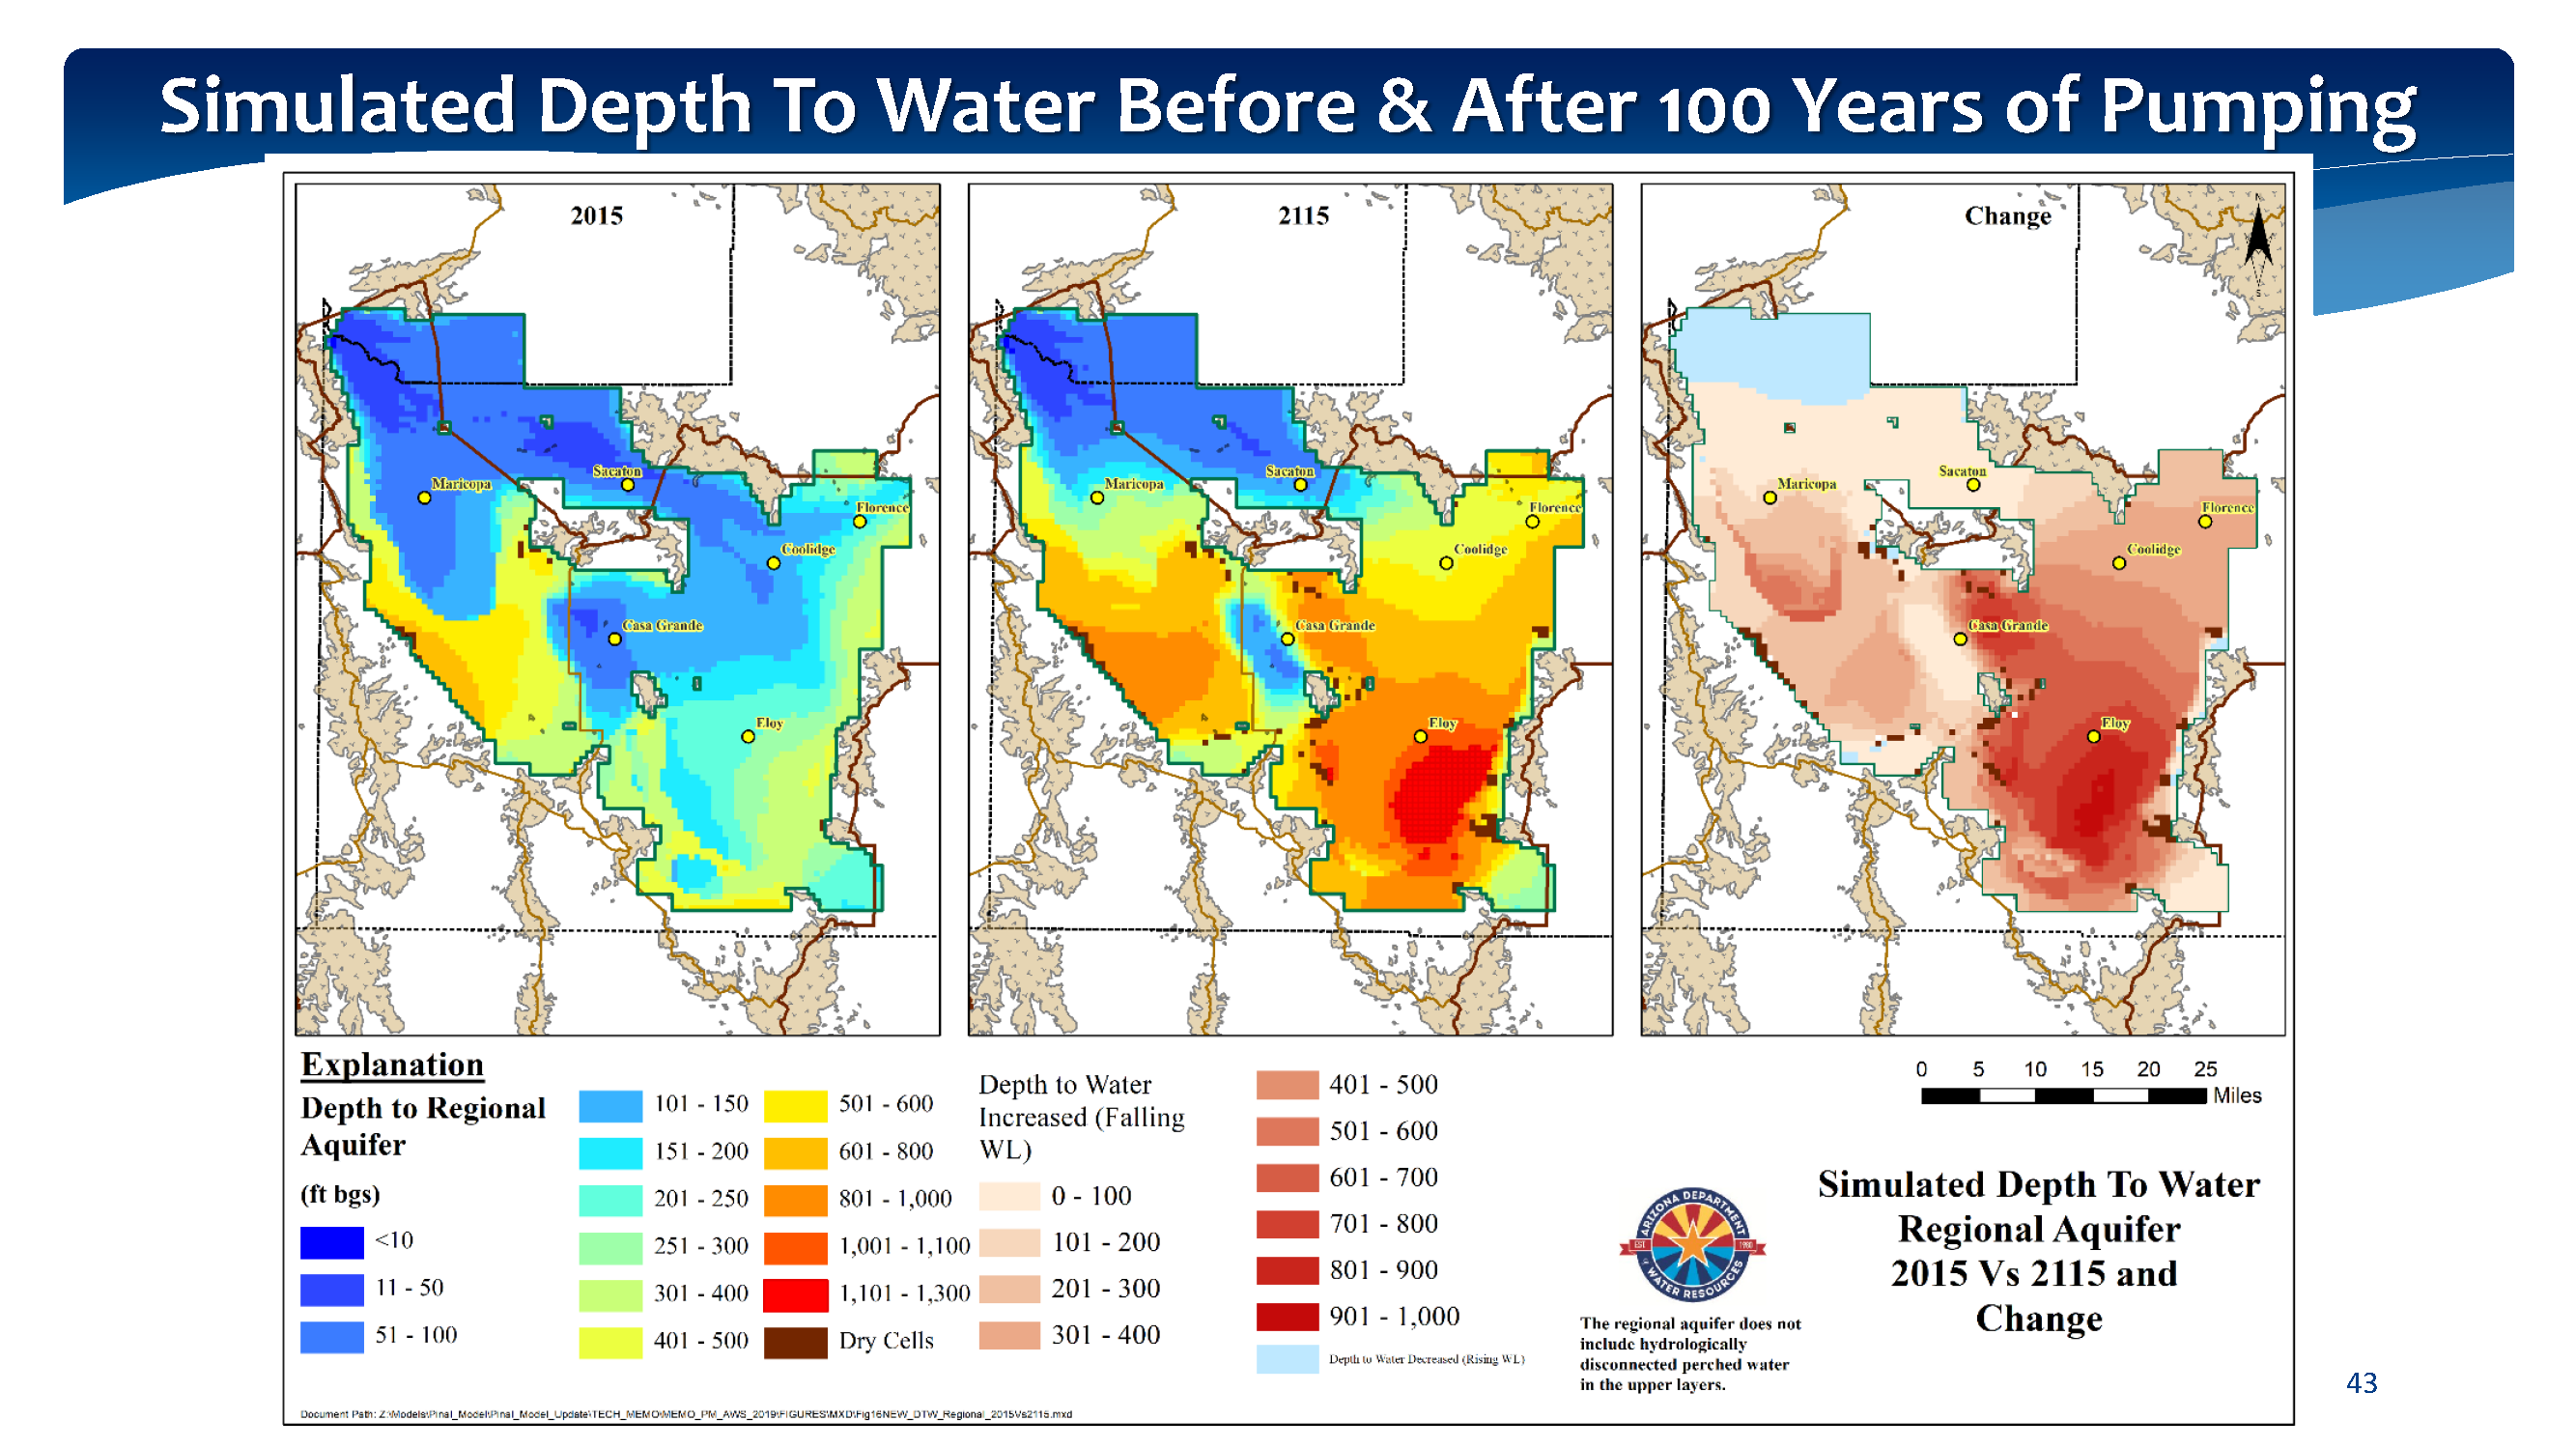 Simulated Depth To Water Before & After 100 Years of Pumping